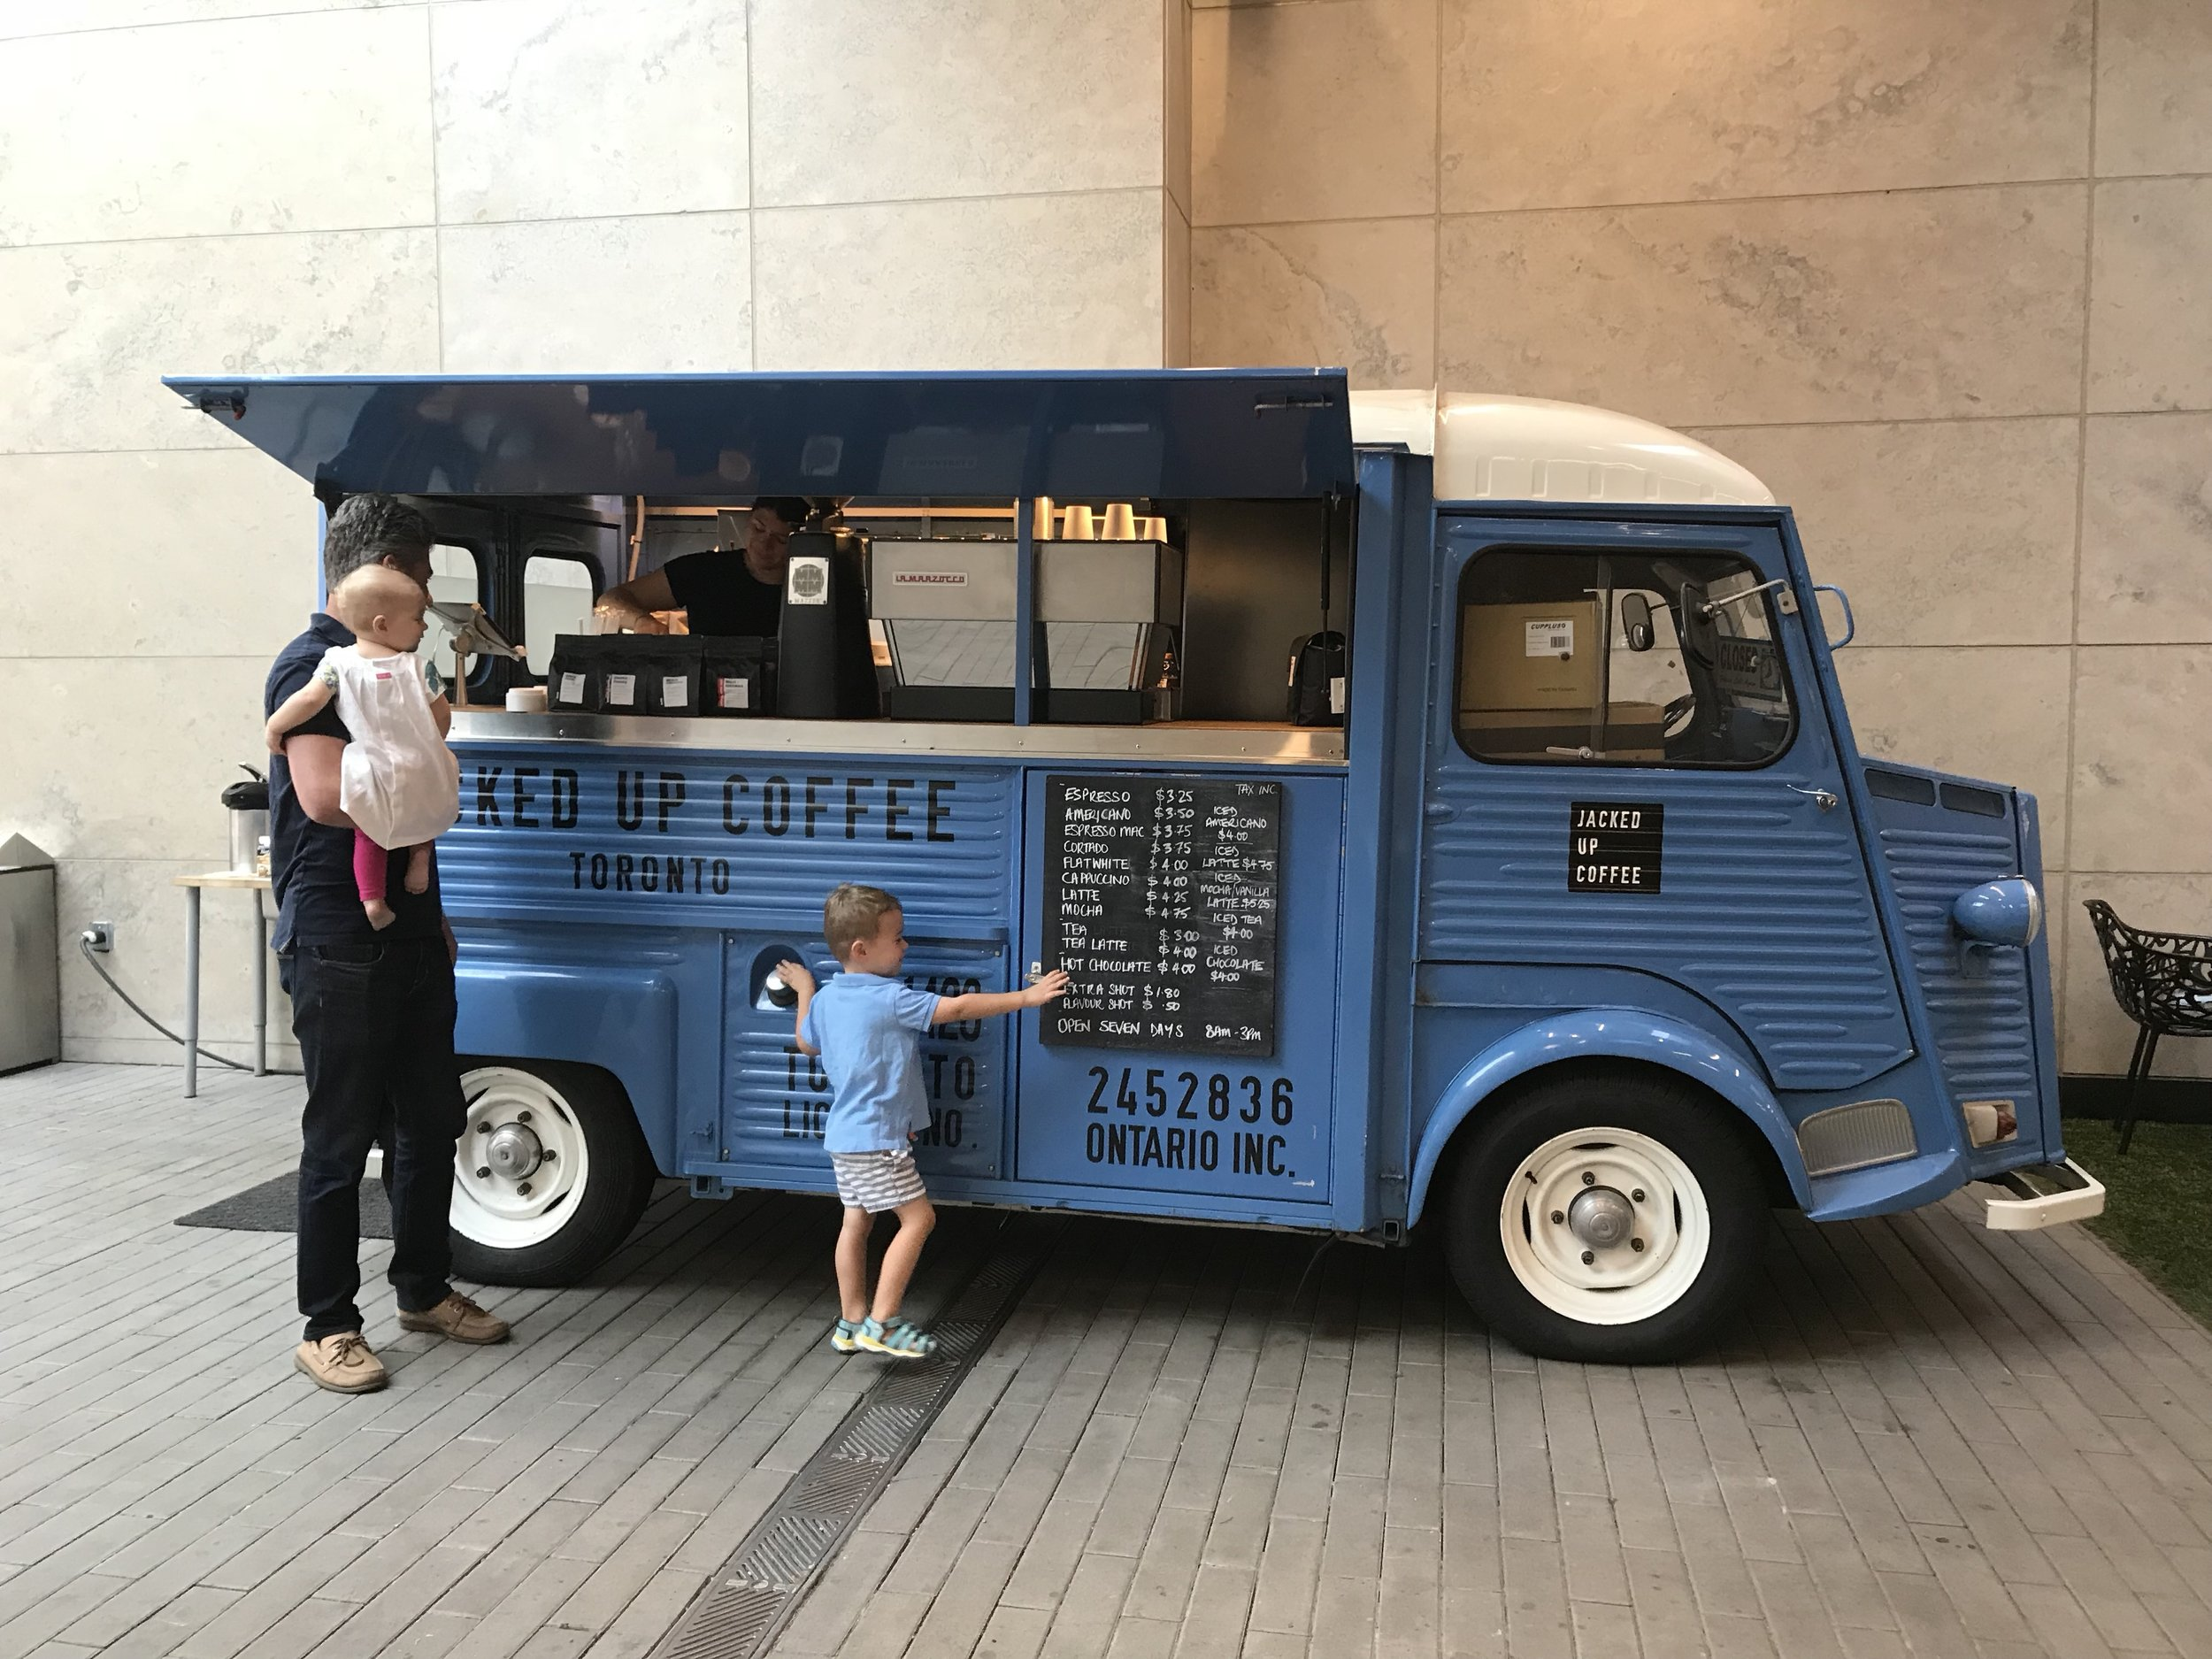 Make it a Double:  This central coffee truck serves superb pick-me-ups along a covered pedestrian thoroughfare.